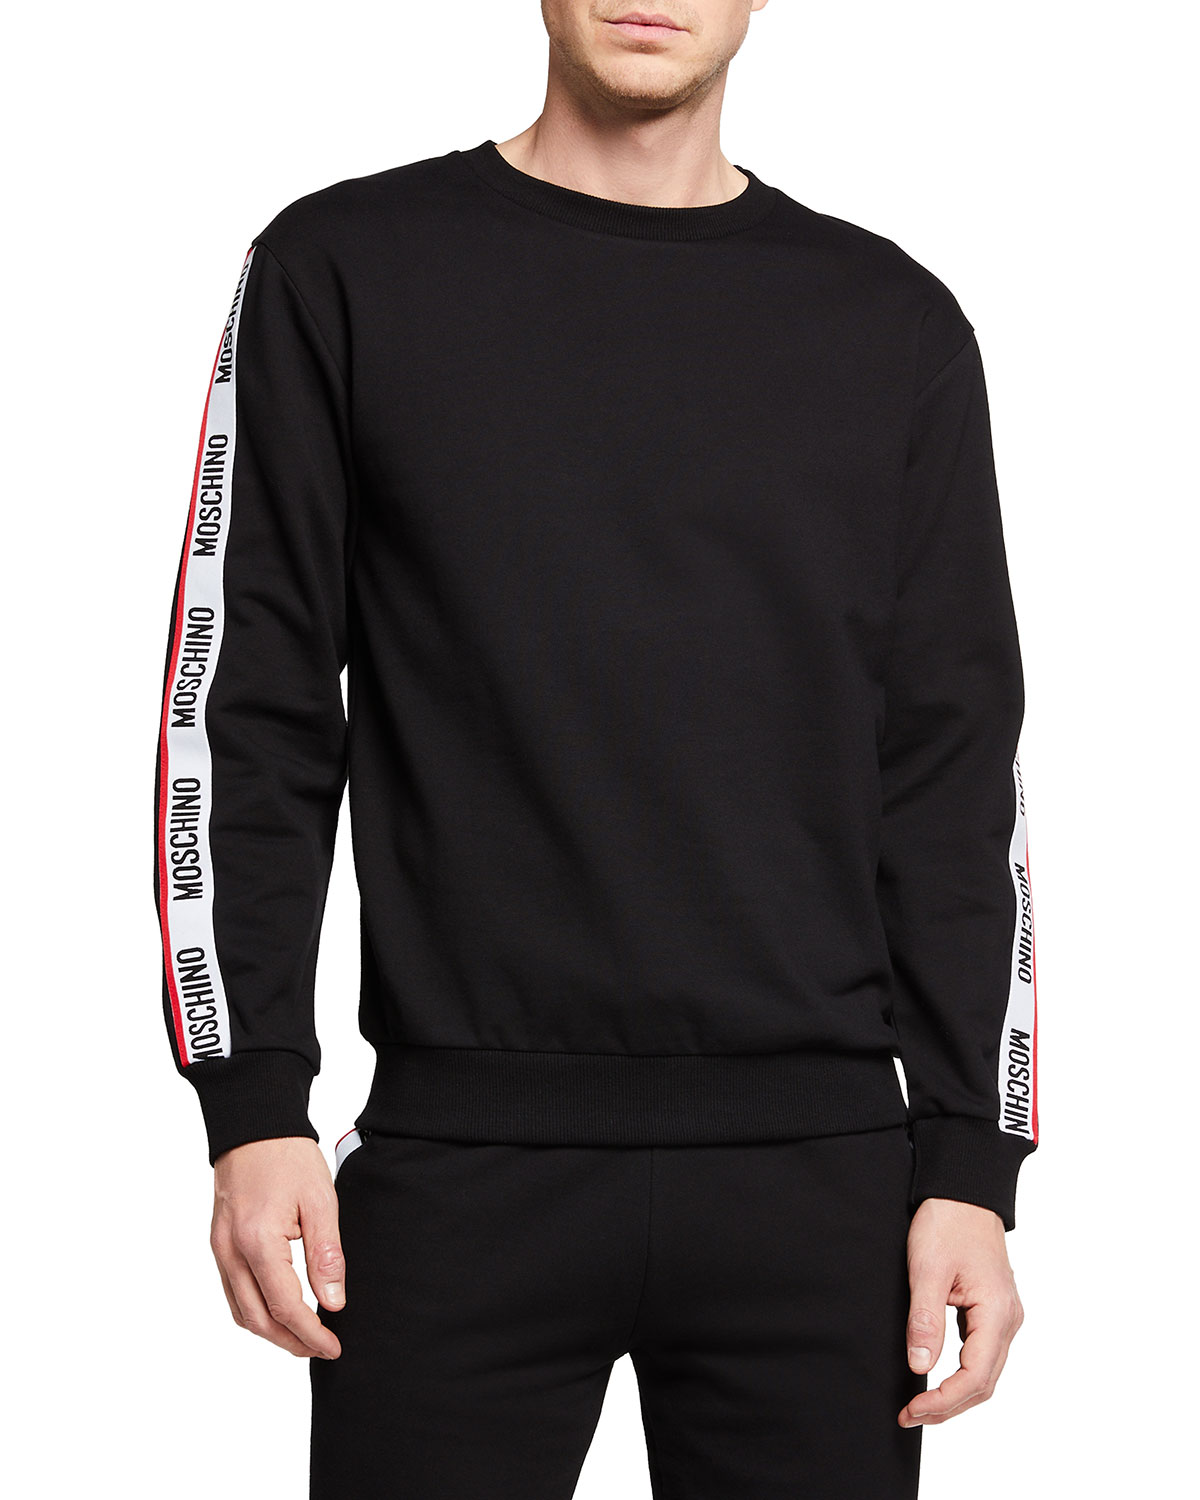 Moschino MEN'S CREW SWEATER W/ LOGO TAPING